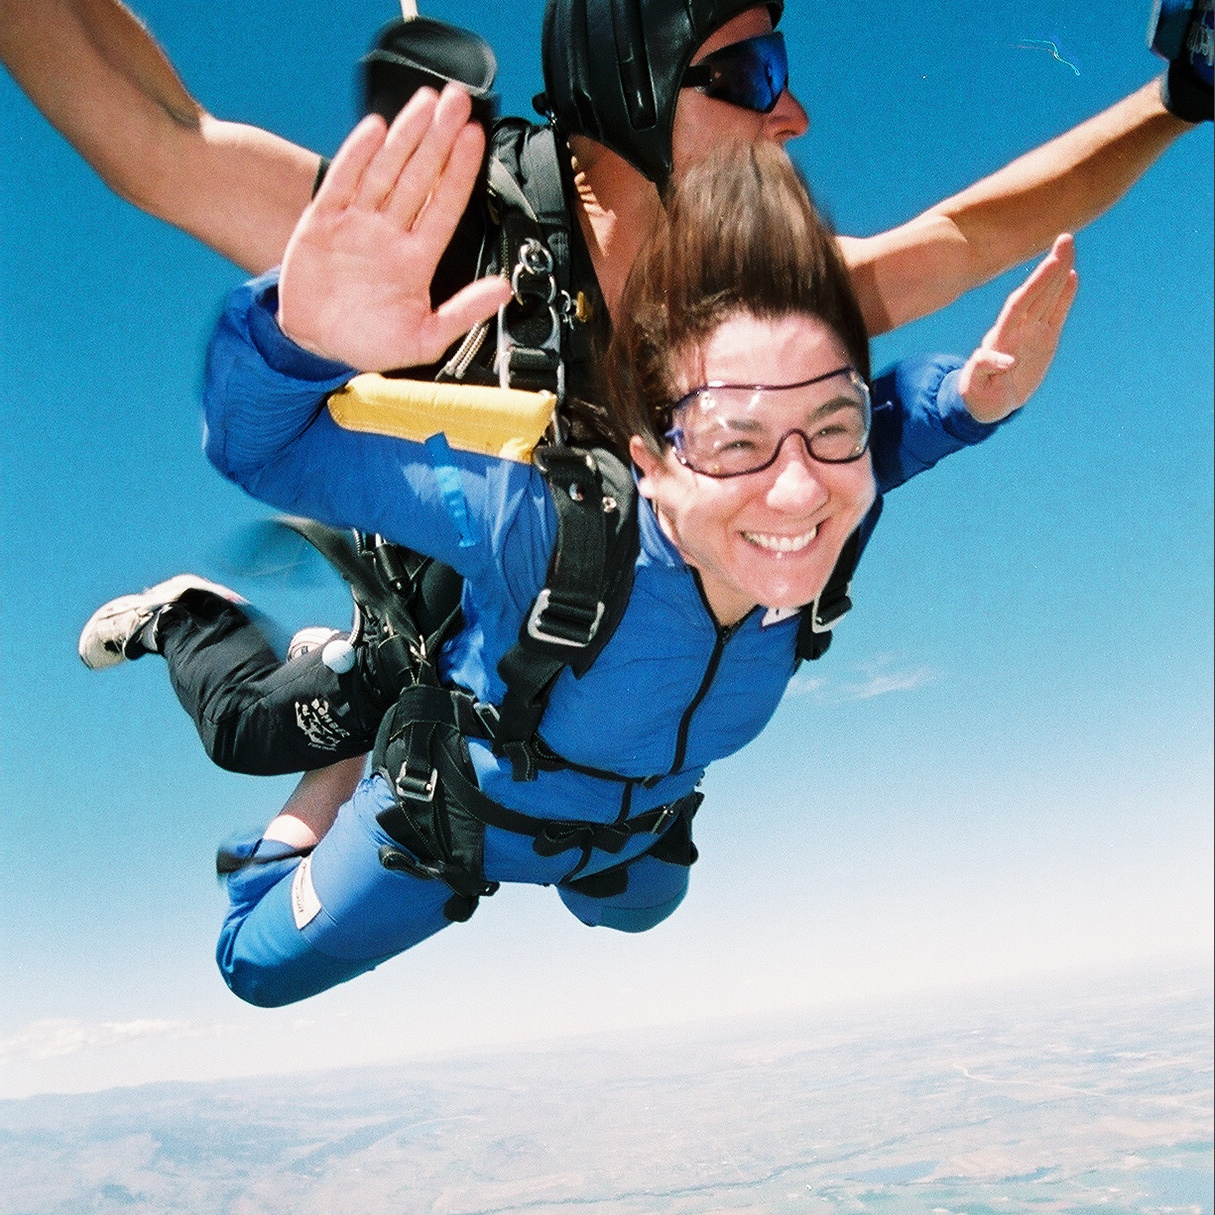 Jen Coken Author and Coach Skydiving, enjoying life.